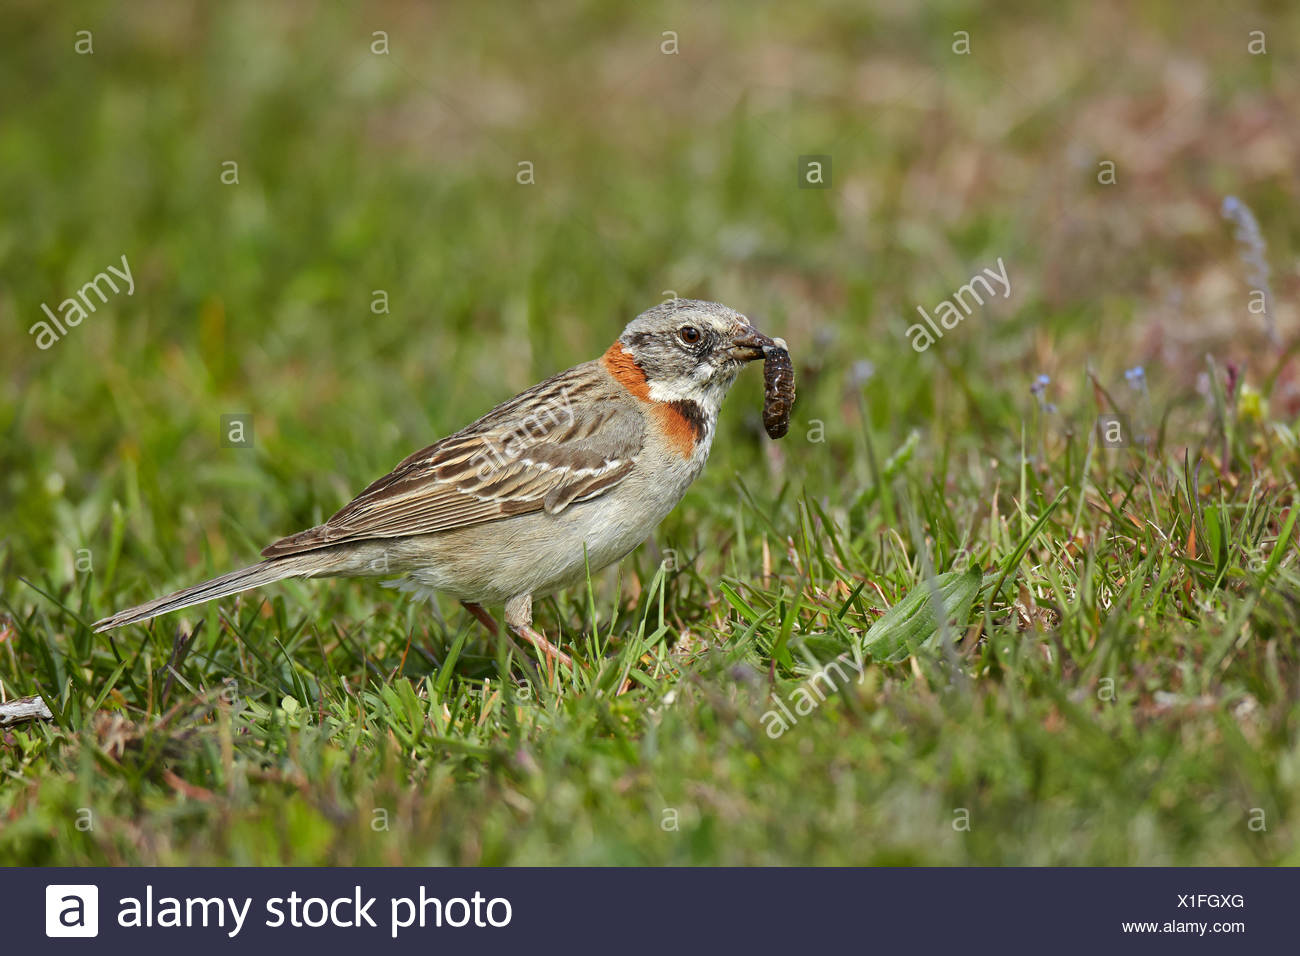 Rufous-collared Sparrow feeding - Torres del Paine NP Chile Stock Photo